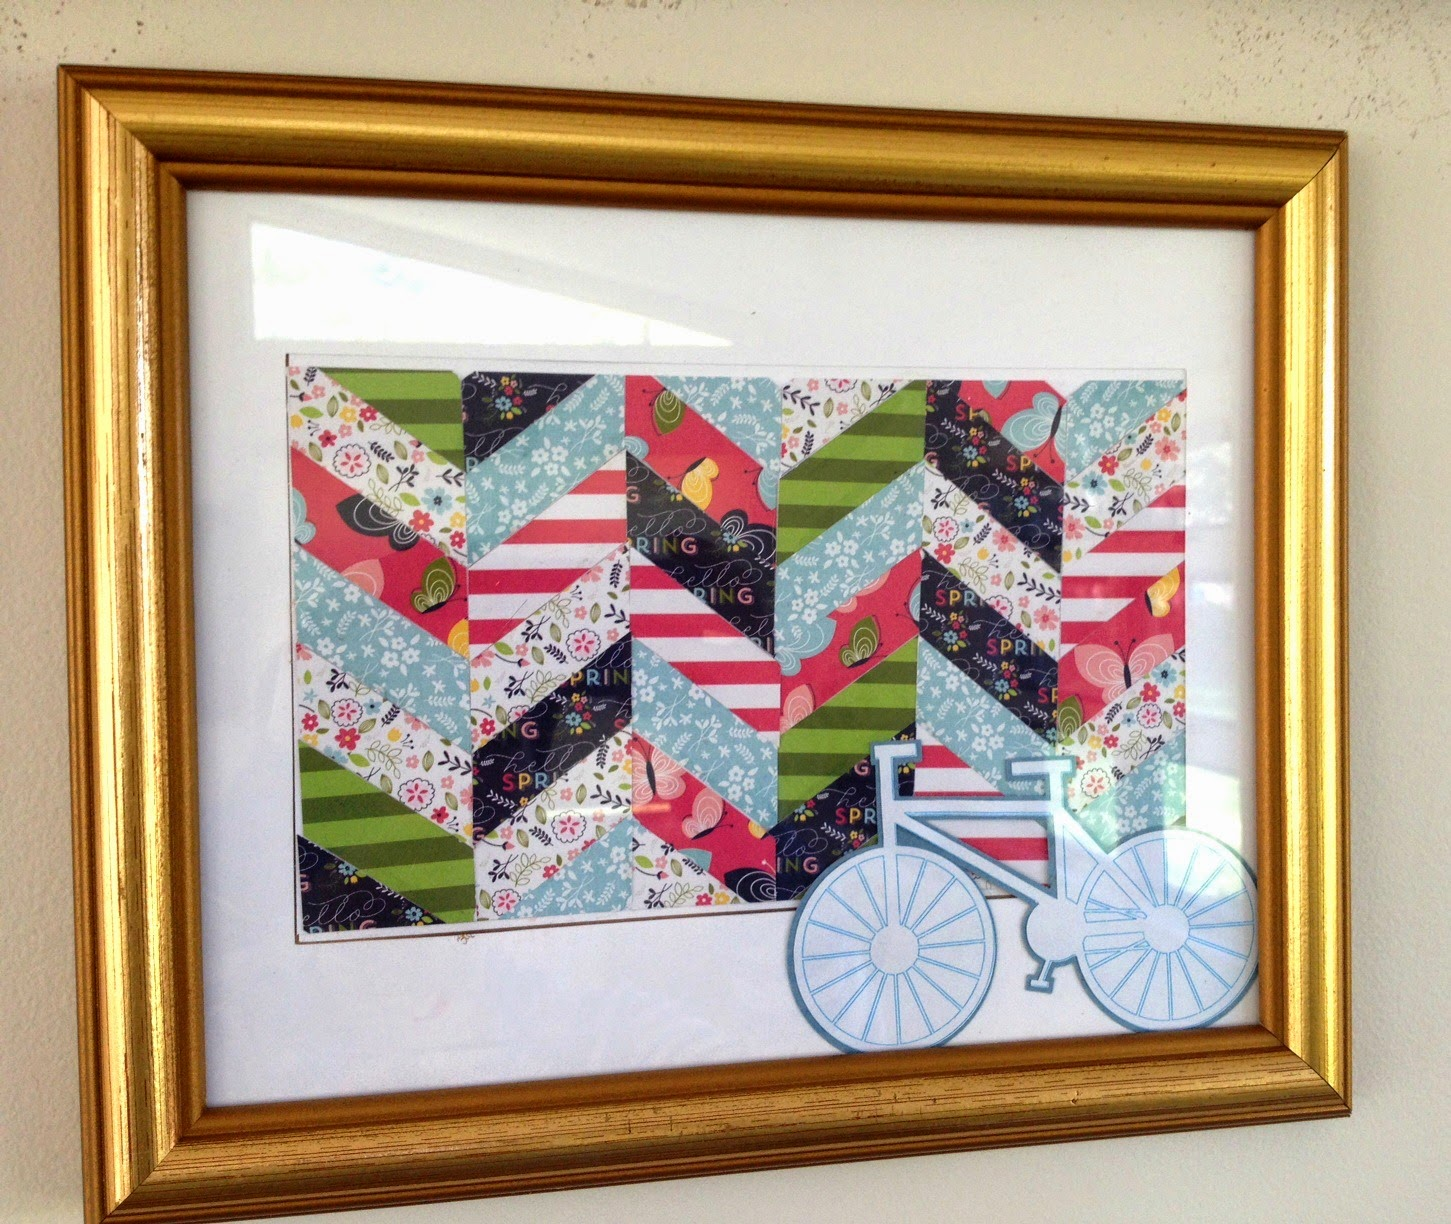 http://silhouetteschool.blogspot.com/2014/05/spring-chevron-and-bicycle-art-made.html